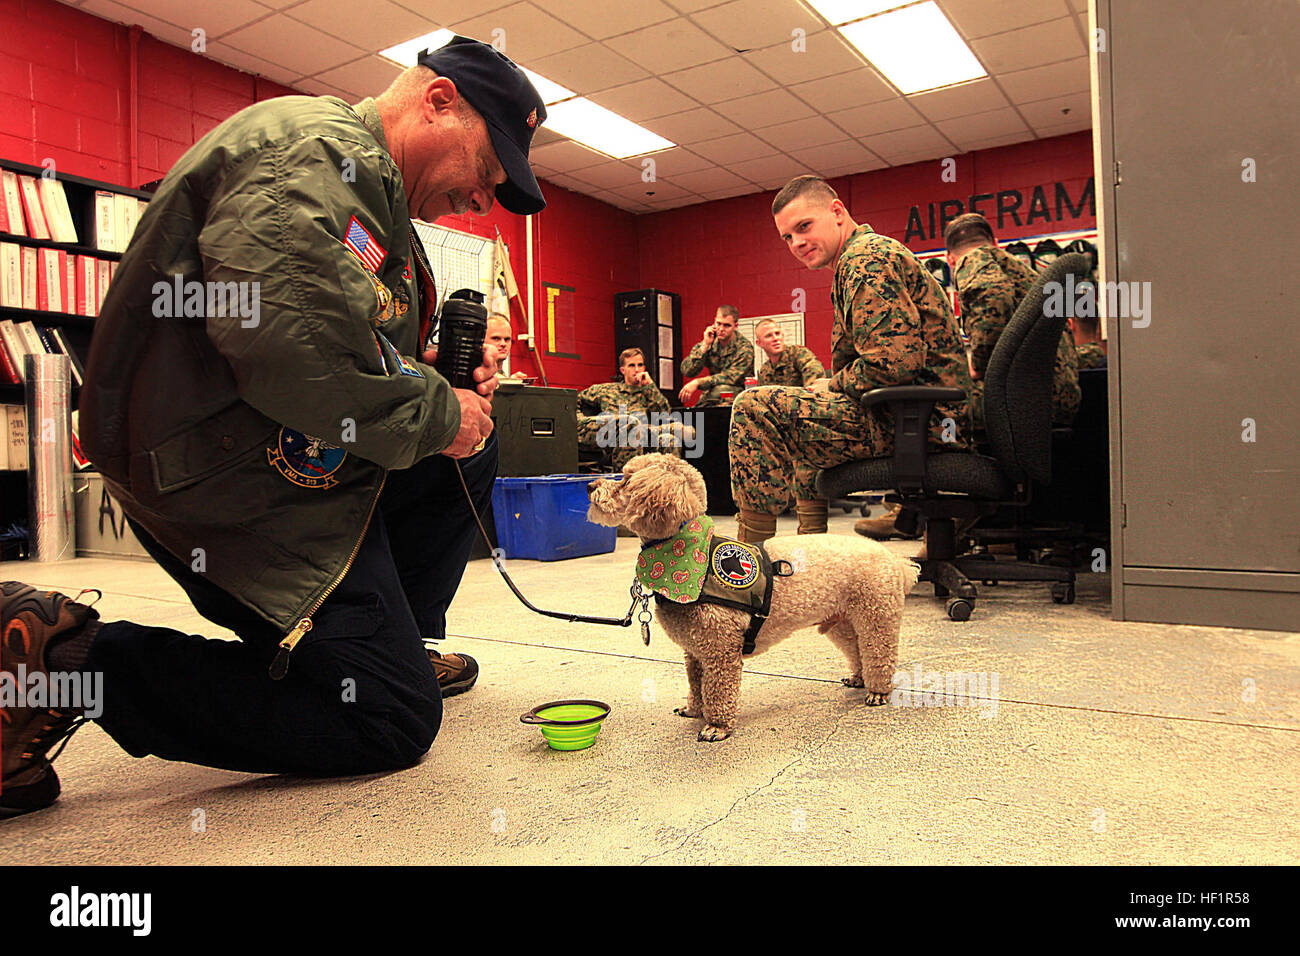 Les Kushner, a Marine Fighter Attack Squadron 115 alumni, takes a moment to water his service dog, Charlie Brown, - Stock Image